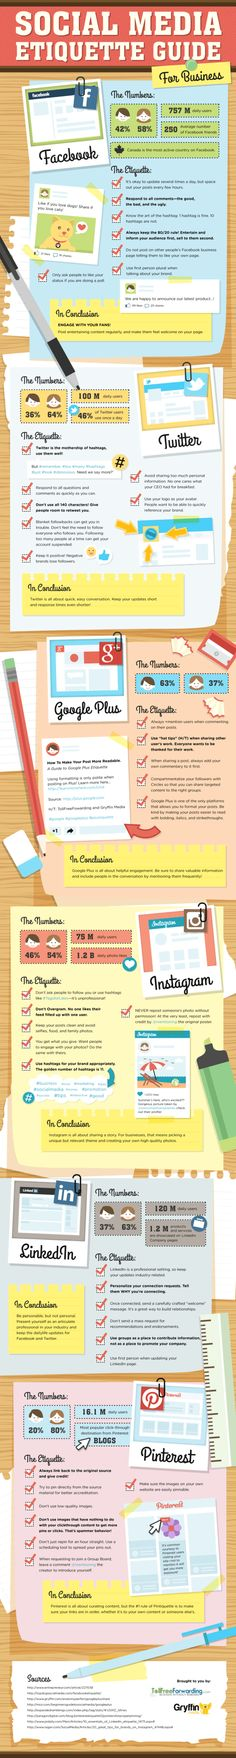 Wondering if your social media etiquette is up to snuff? Check this #infographic for tips on Pinterest, Facebook, Twitter, LinkedIn, GooglePlus, and Instagram! #SocialMediaTips #SocialMedia